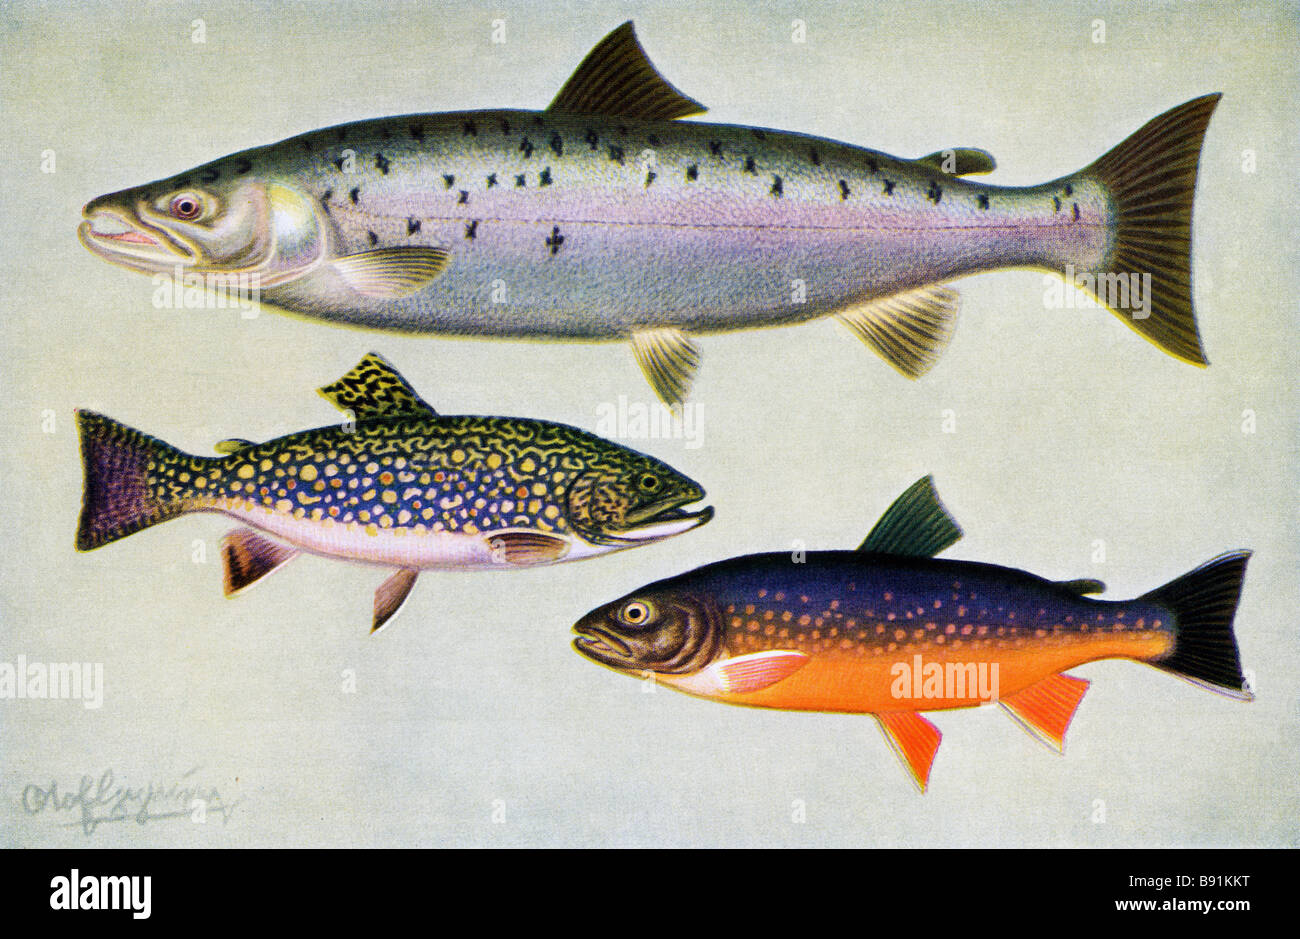 Atlantic salmon, brook trout and Arctic char